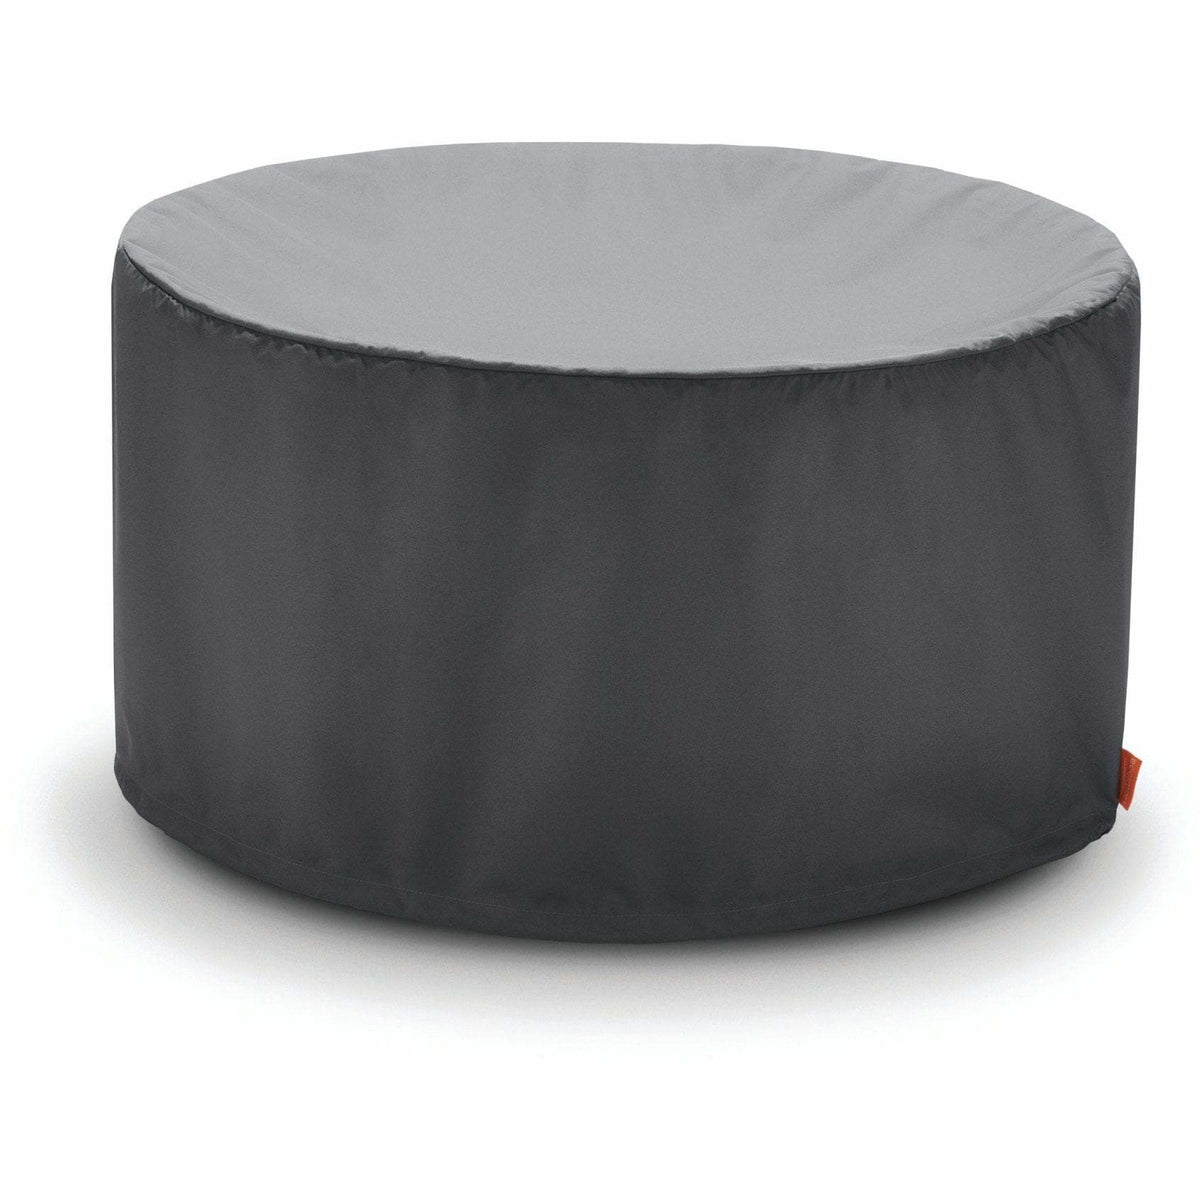 Pod40 Ethanol Fire Table Cover - Outdoor Living Essentials